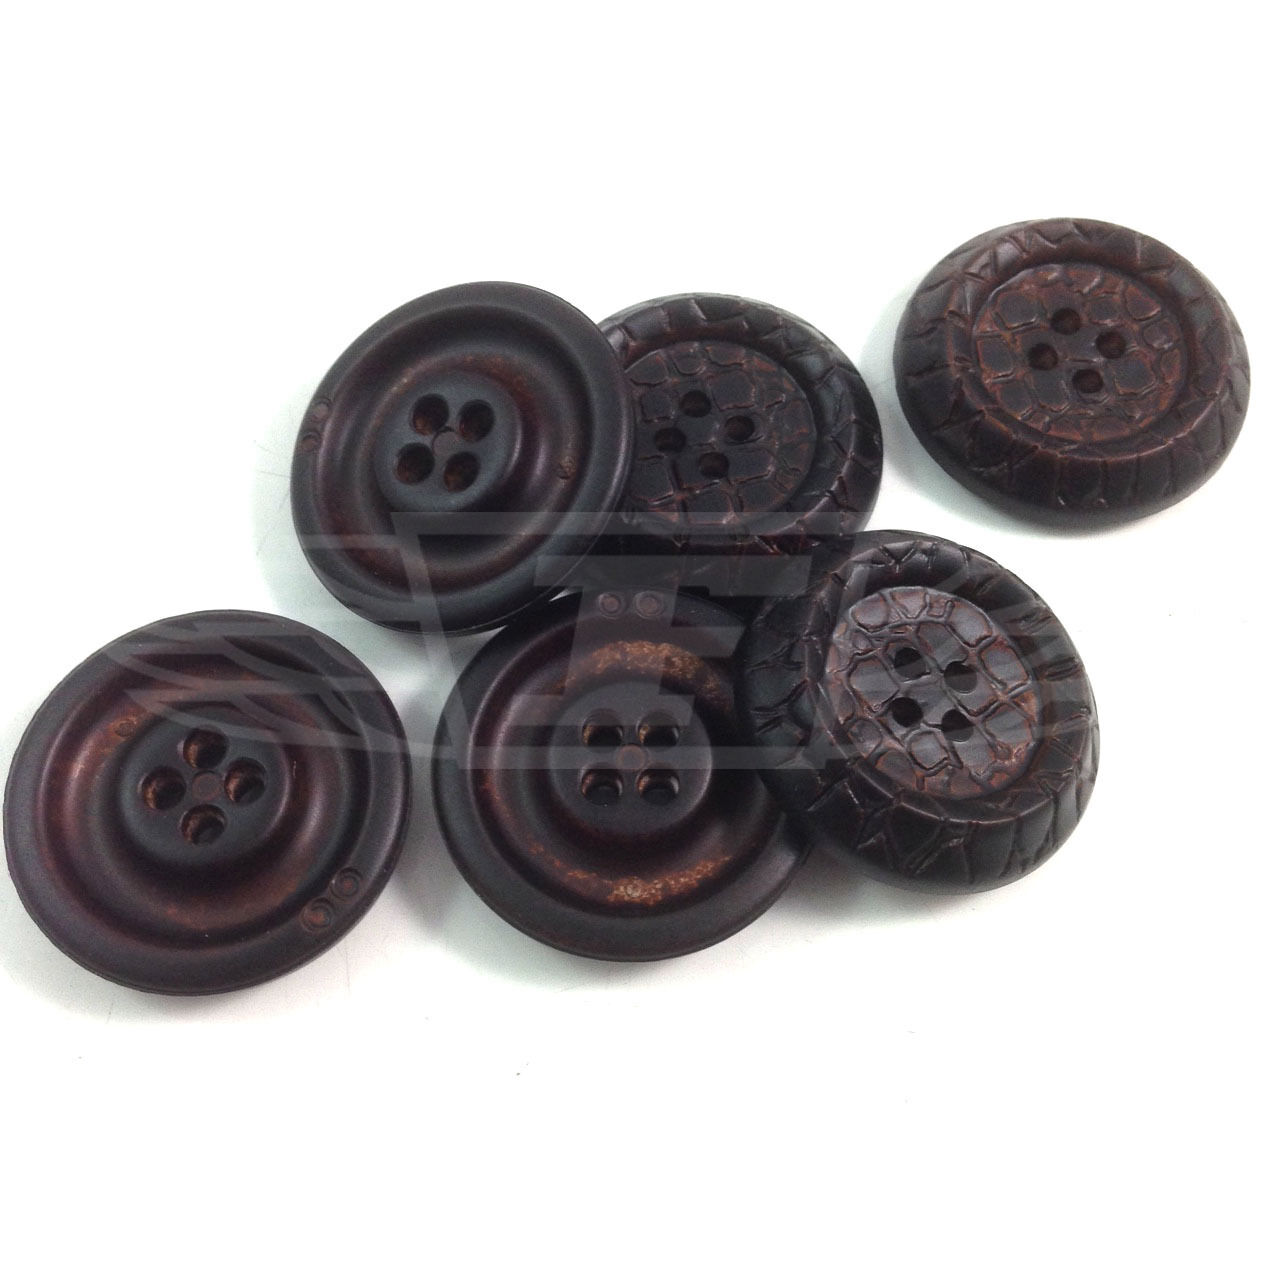 PACK OF 10 20mm BROWN CRACKED PATTERN PLASTIC BUTTON BUTTONS BTN 27174-32